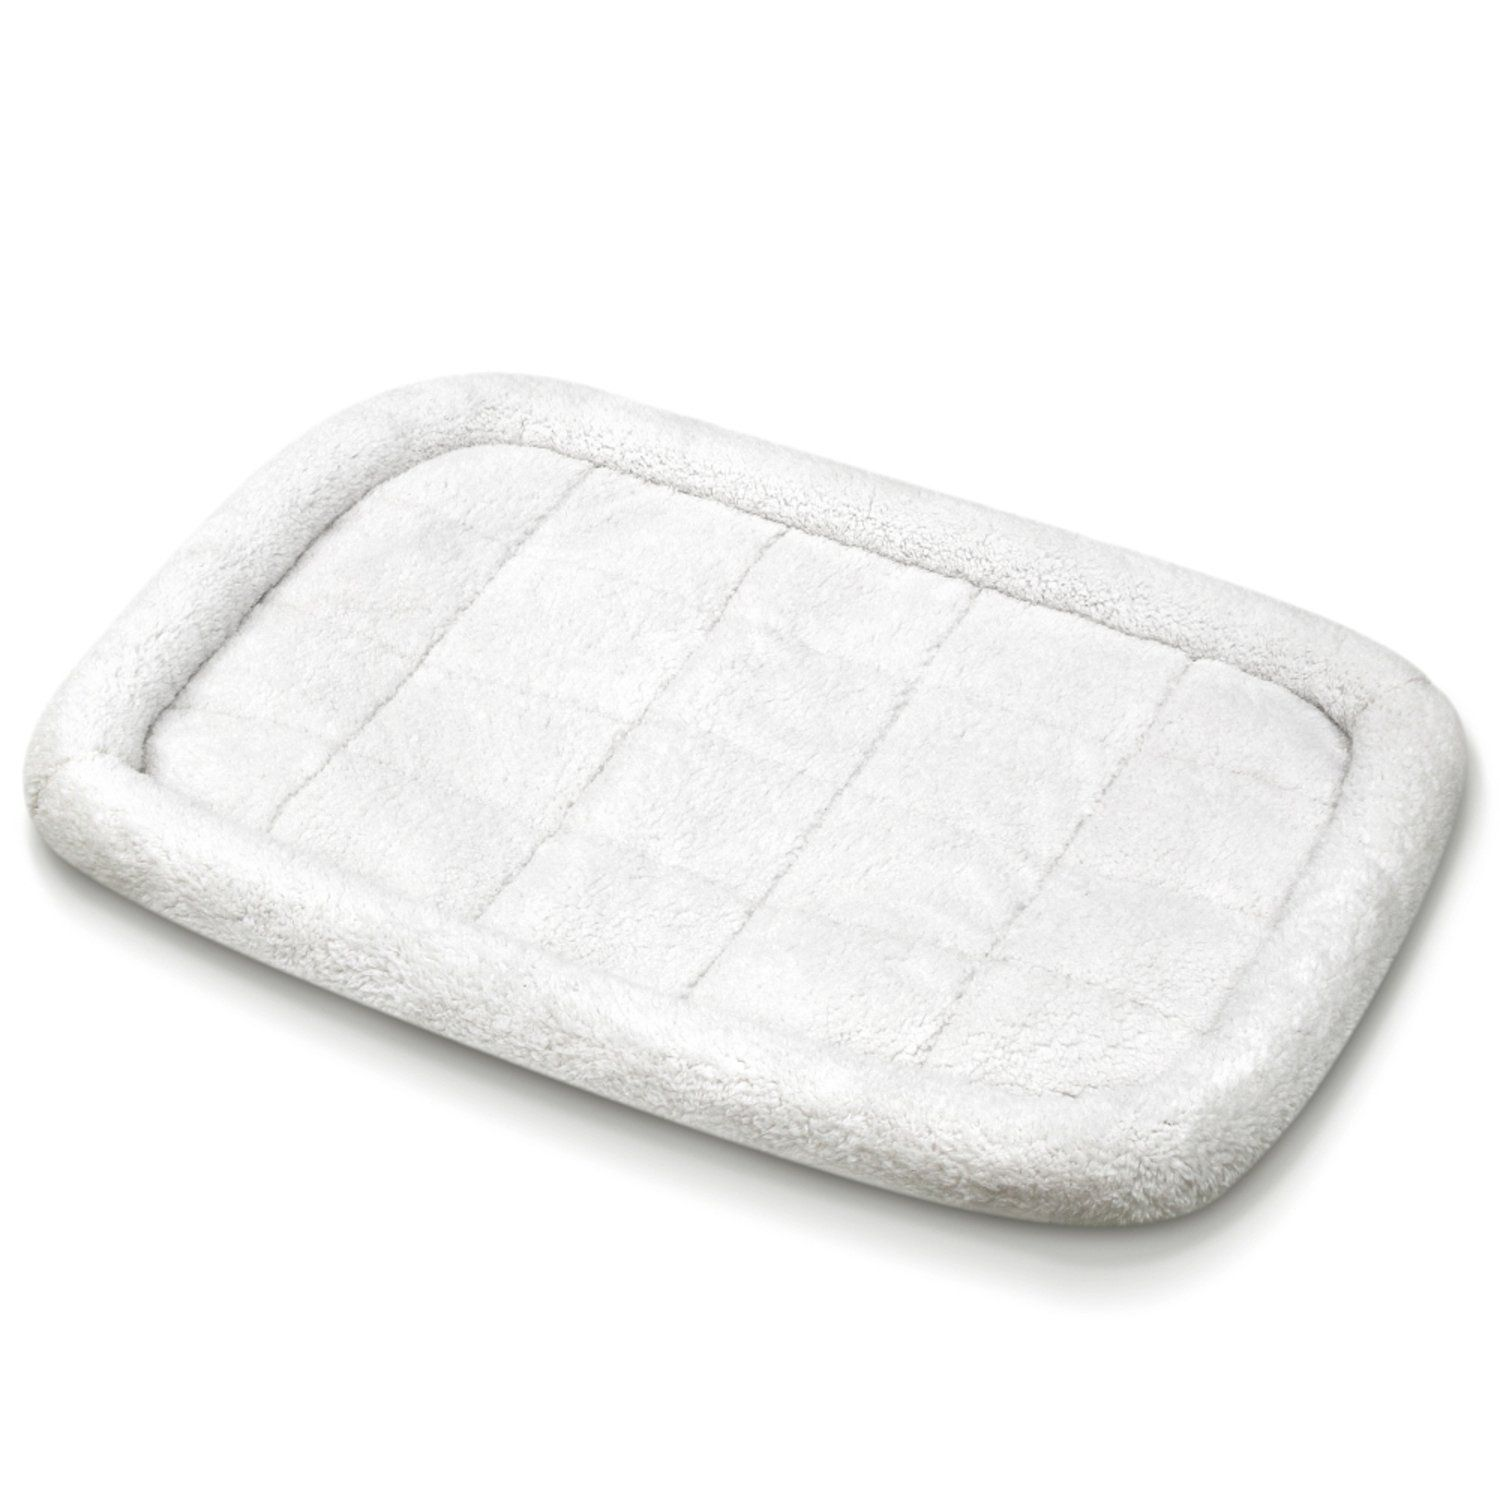 Fluffy Paws Foldable Soft Fleece Pet Crate Mat Bed with